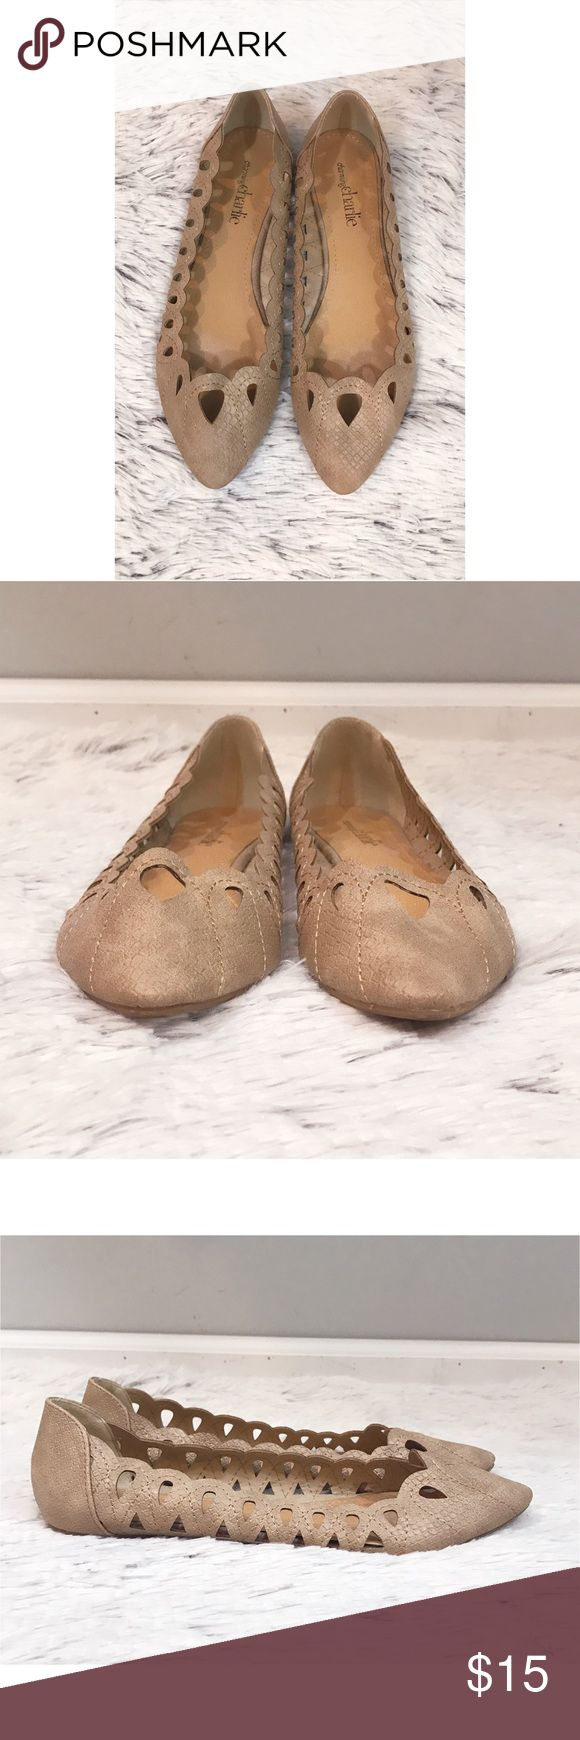 Charming Charlie tan flats Charming Charlie. Size 7. Tan flats with scalloped edges and openings on the toes. 😍 Charming Charlie Shoes Flats & Loafers